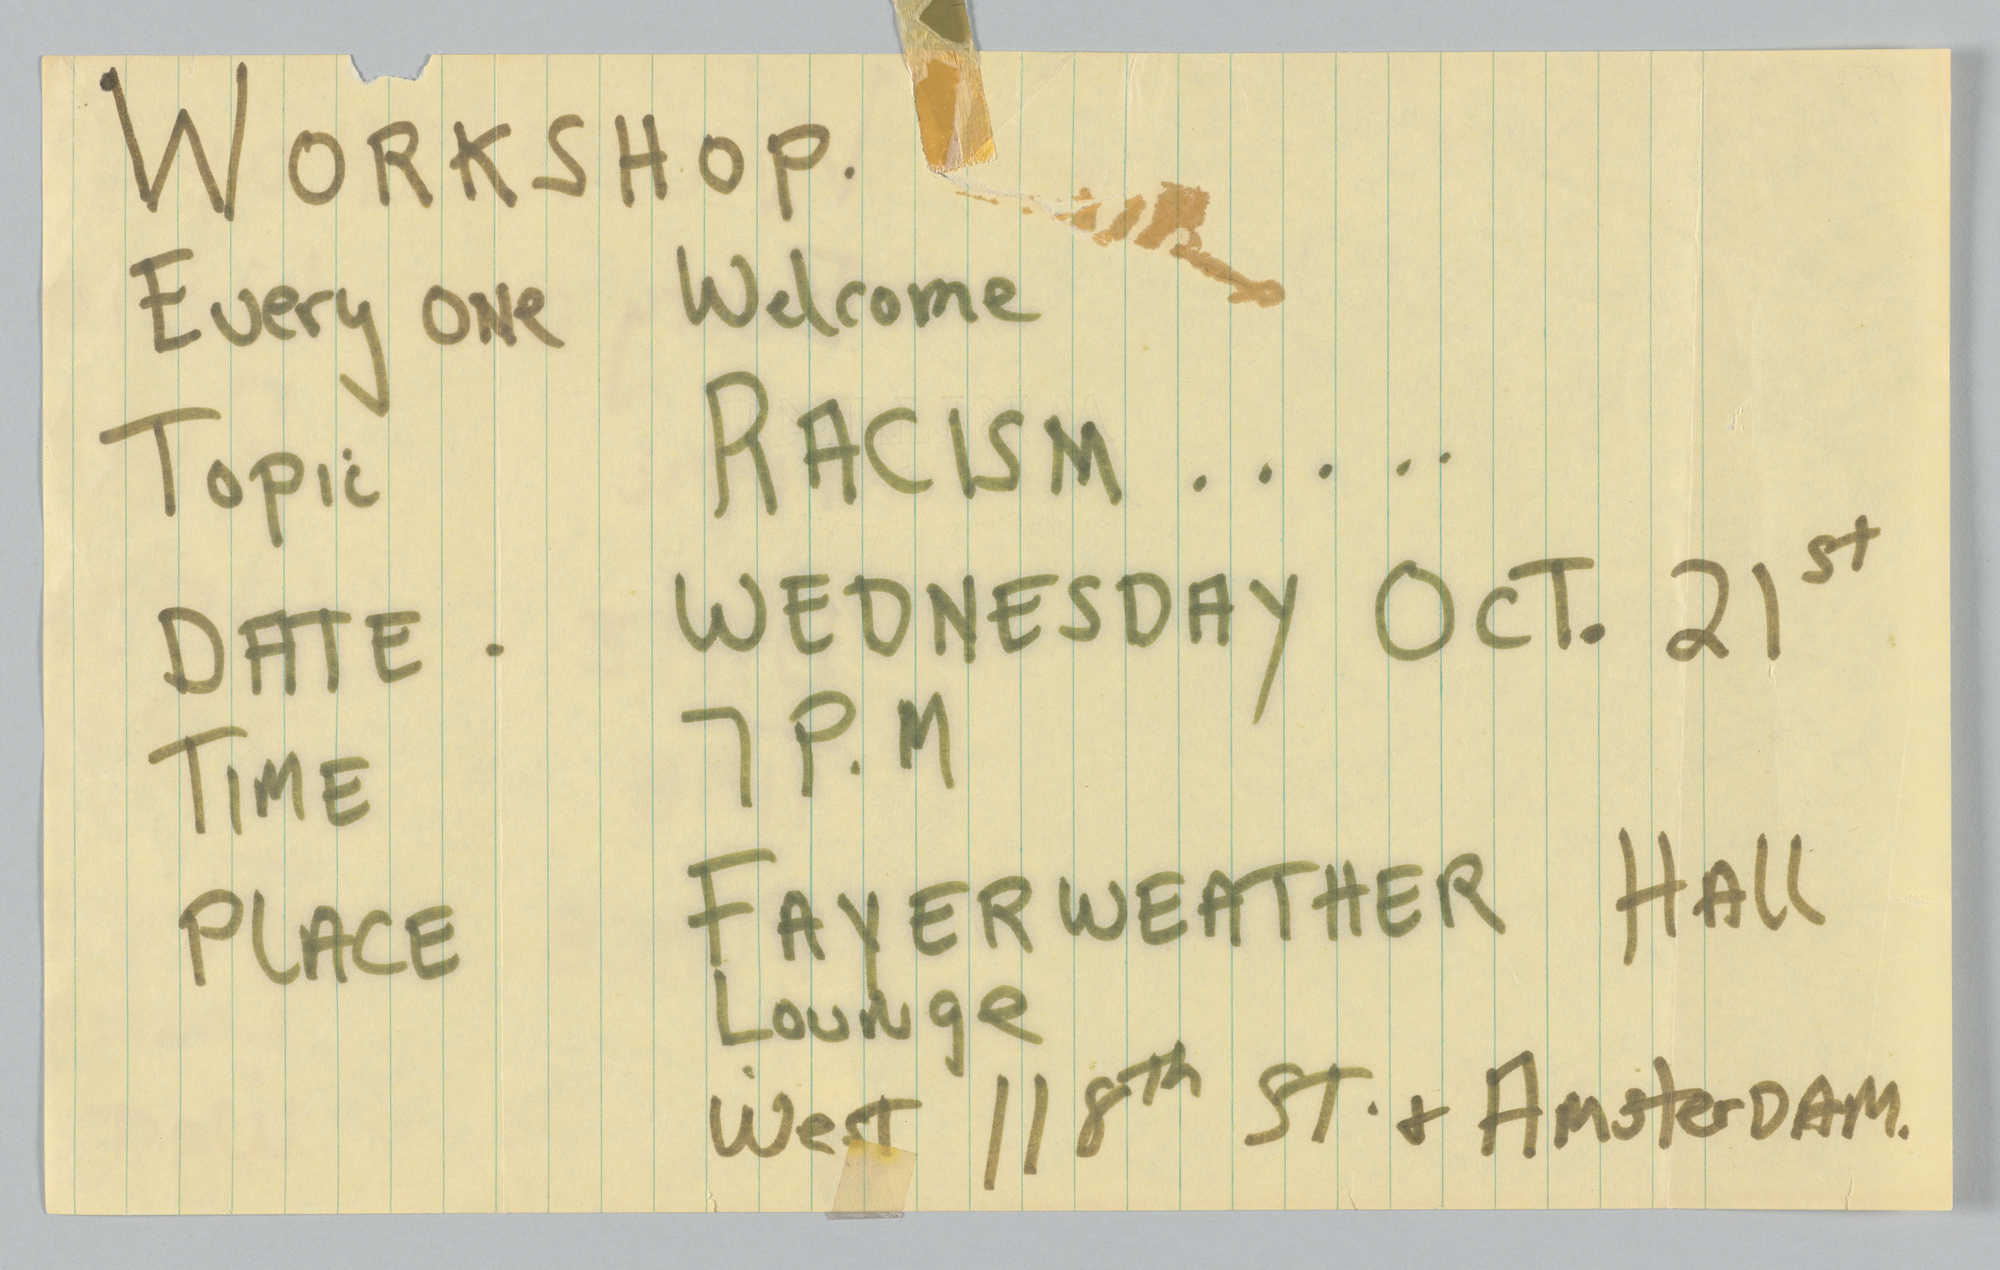 Workshop on Racism